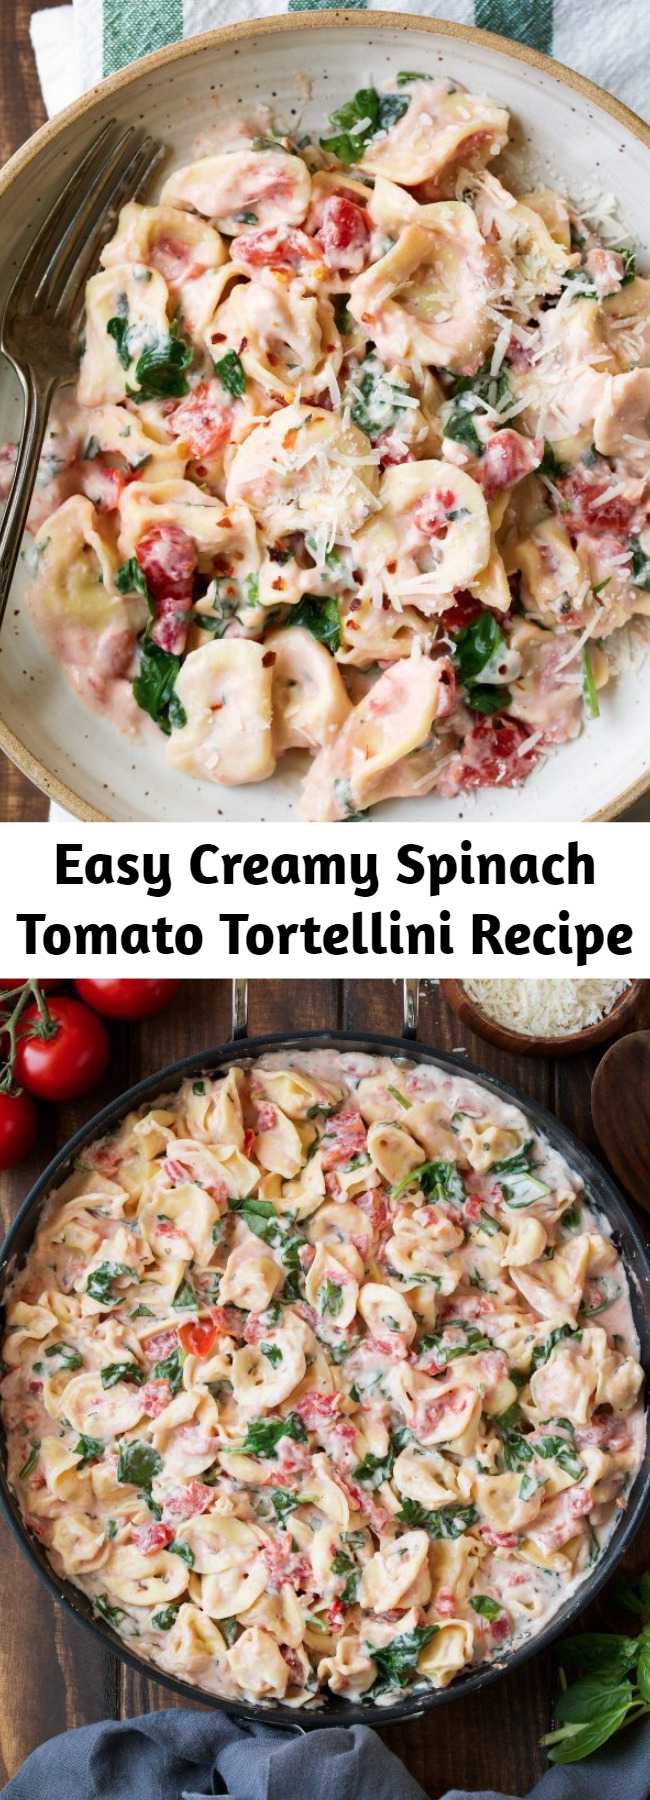 Easy Creamy Spinach Tomato Tortellini Recipe - This Creamy Spinach Tomato Tortellini is so simple and comforting plus its impressive enough to serve to guests when entertaining or to simply curl up with on the sofa. Either way, you'll love it!